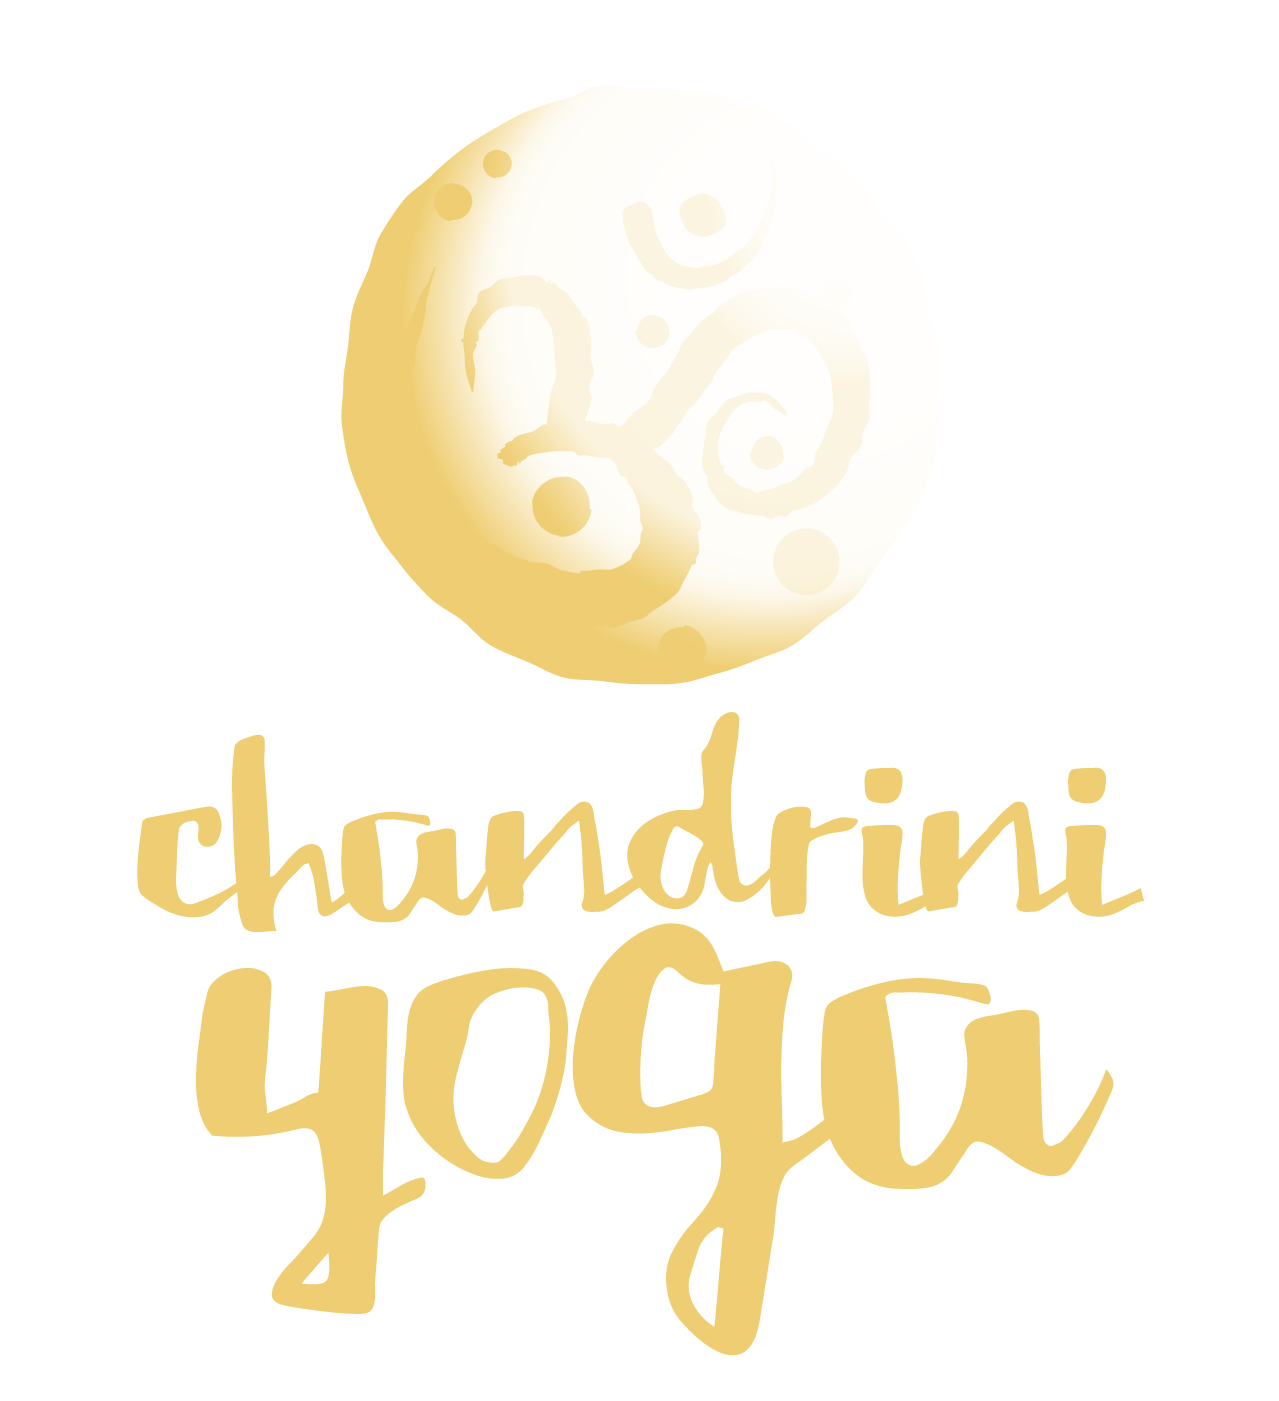 chandrini yoga